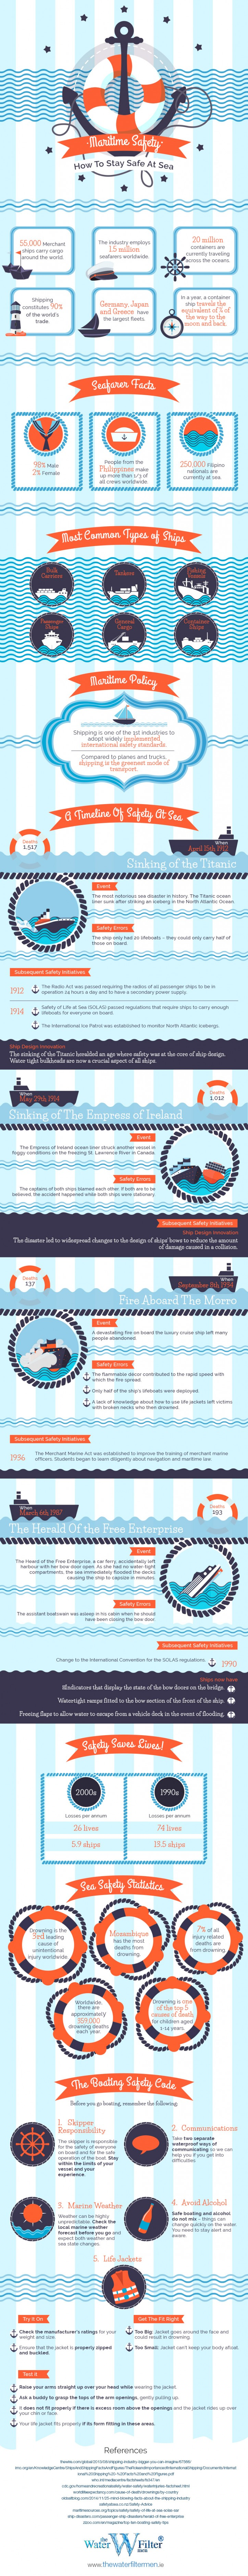 Maritime Safety – How To Stay Safe At Sea